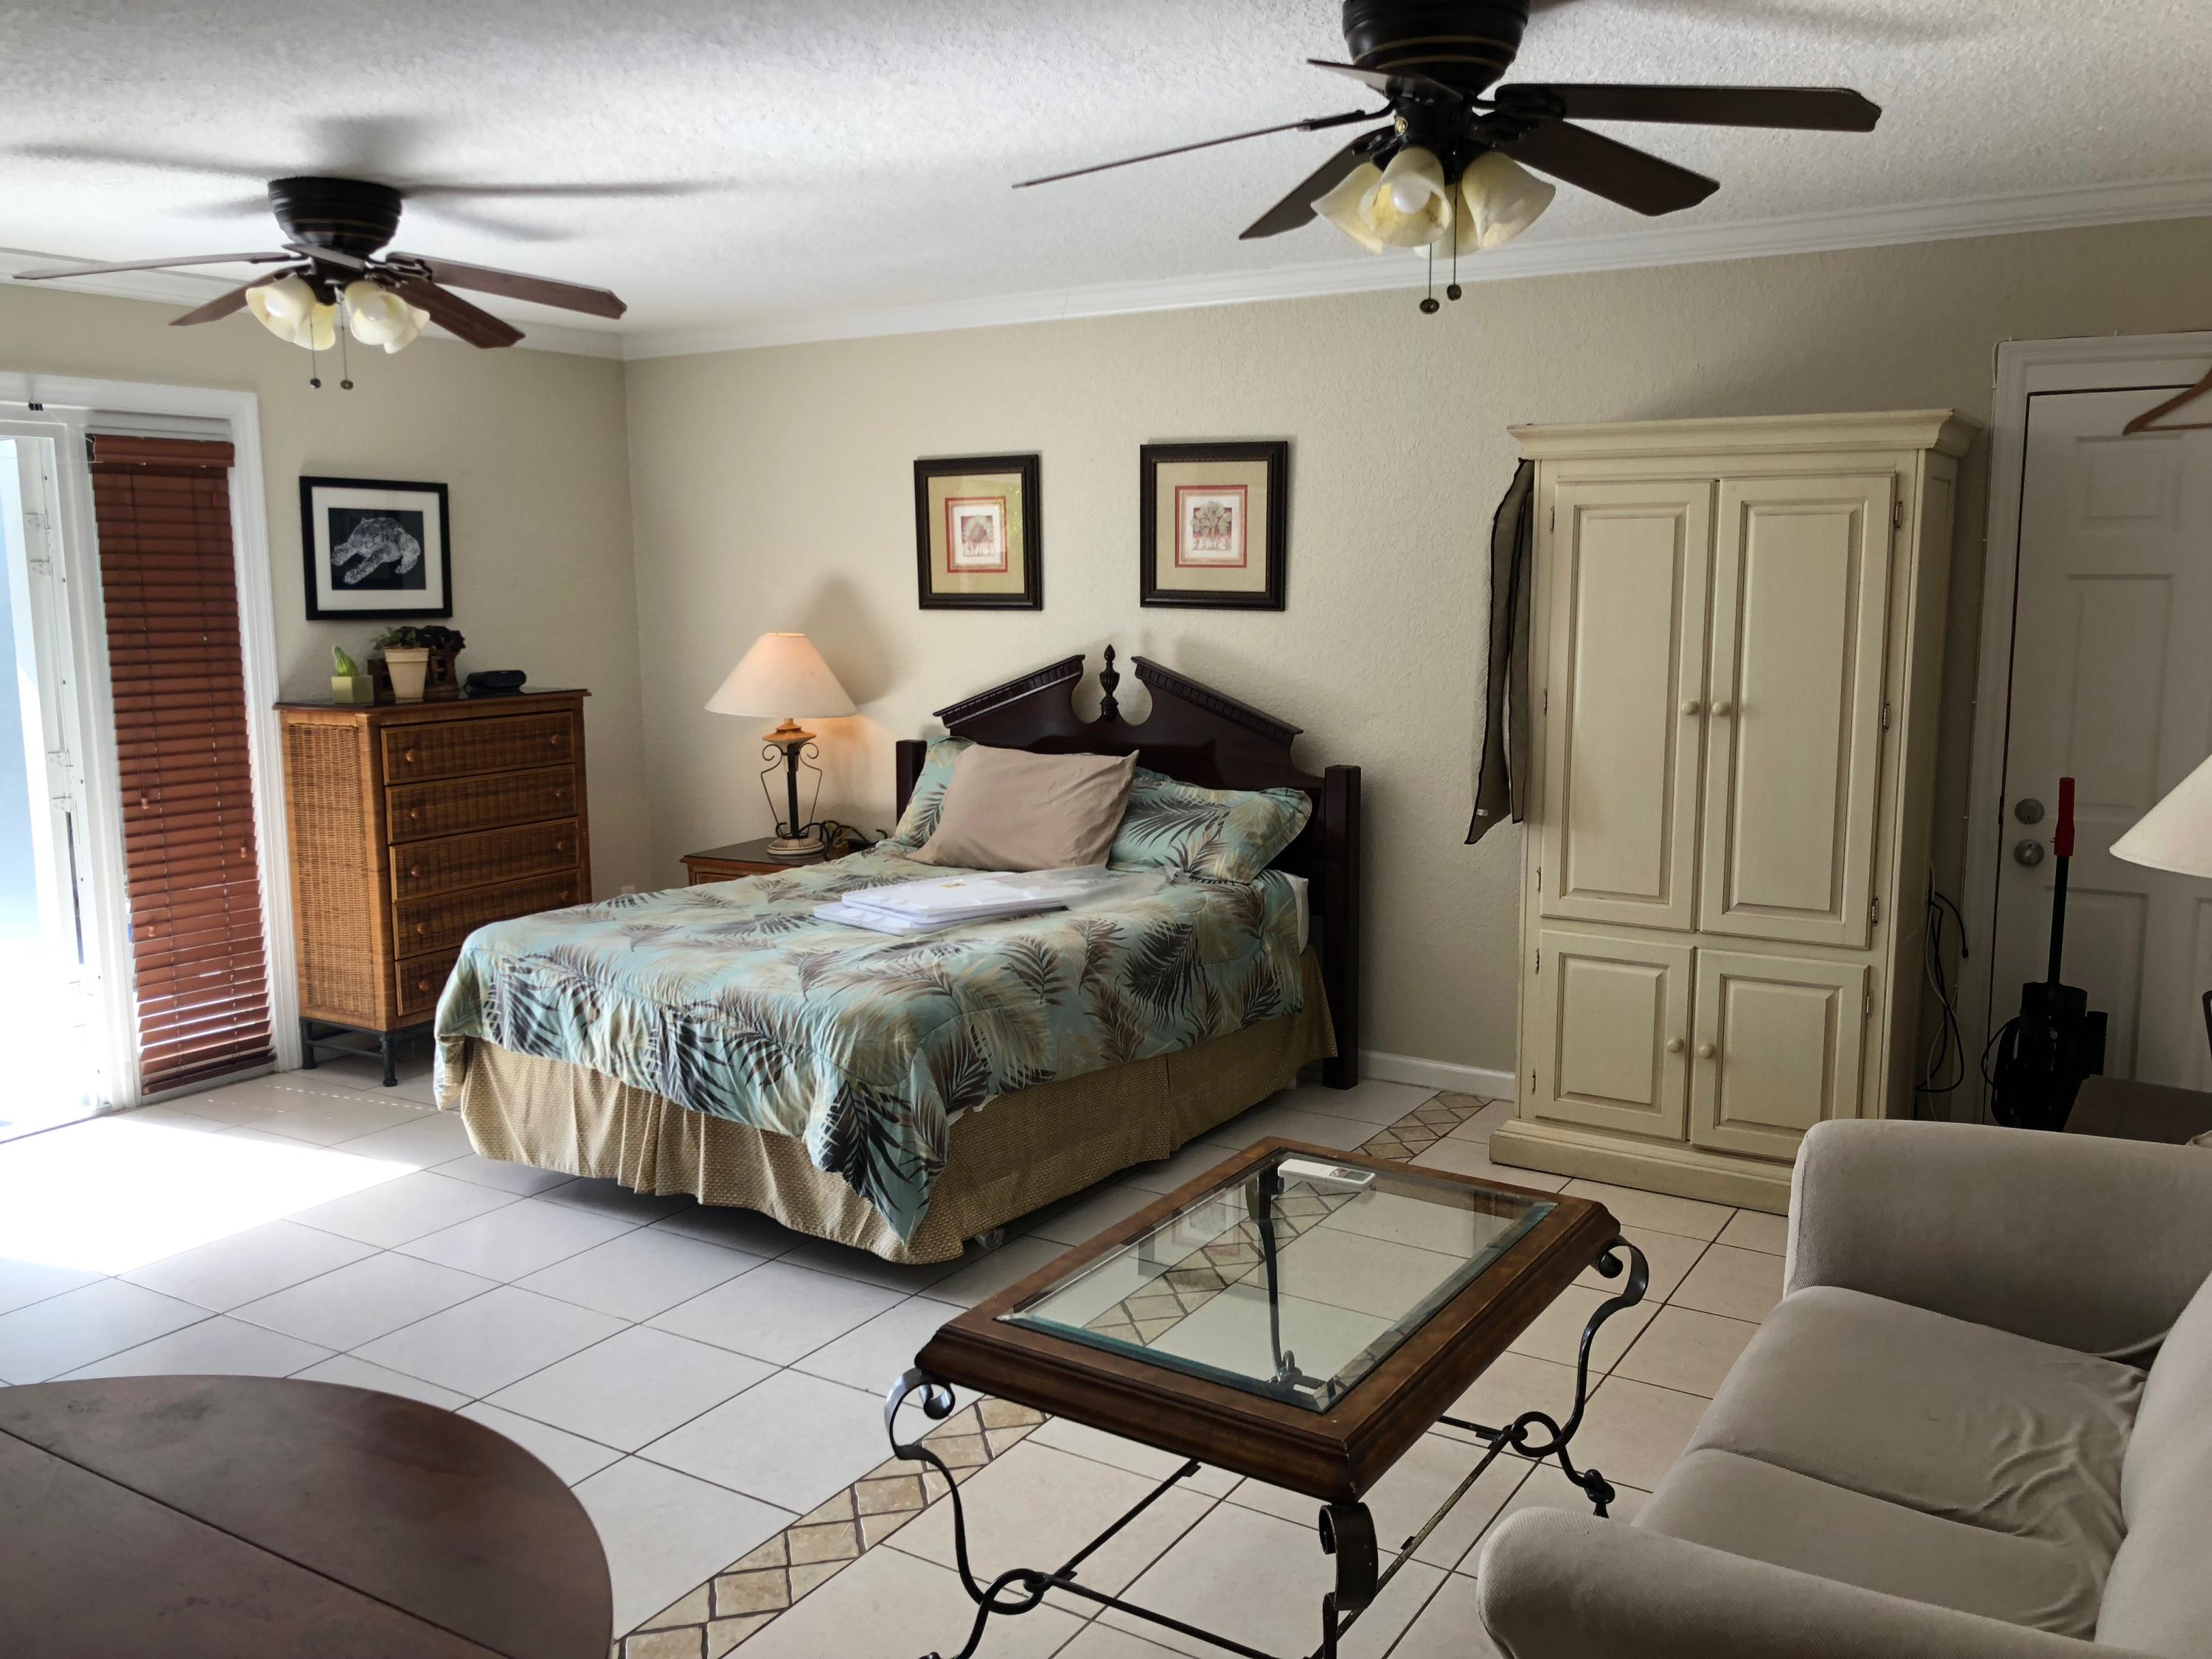 impact windows fort lauderdale hurricane impact minutes away from fort lauderdale beach galleria mall downtown lauderdalelas olas shared coin operated laundry room impact windows and doors 711 ne 14th street back lauderdale fl 33304 mls rx